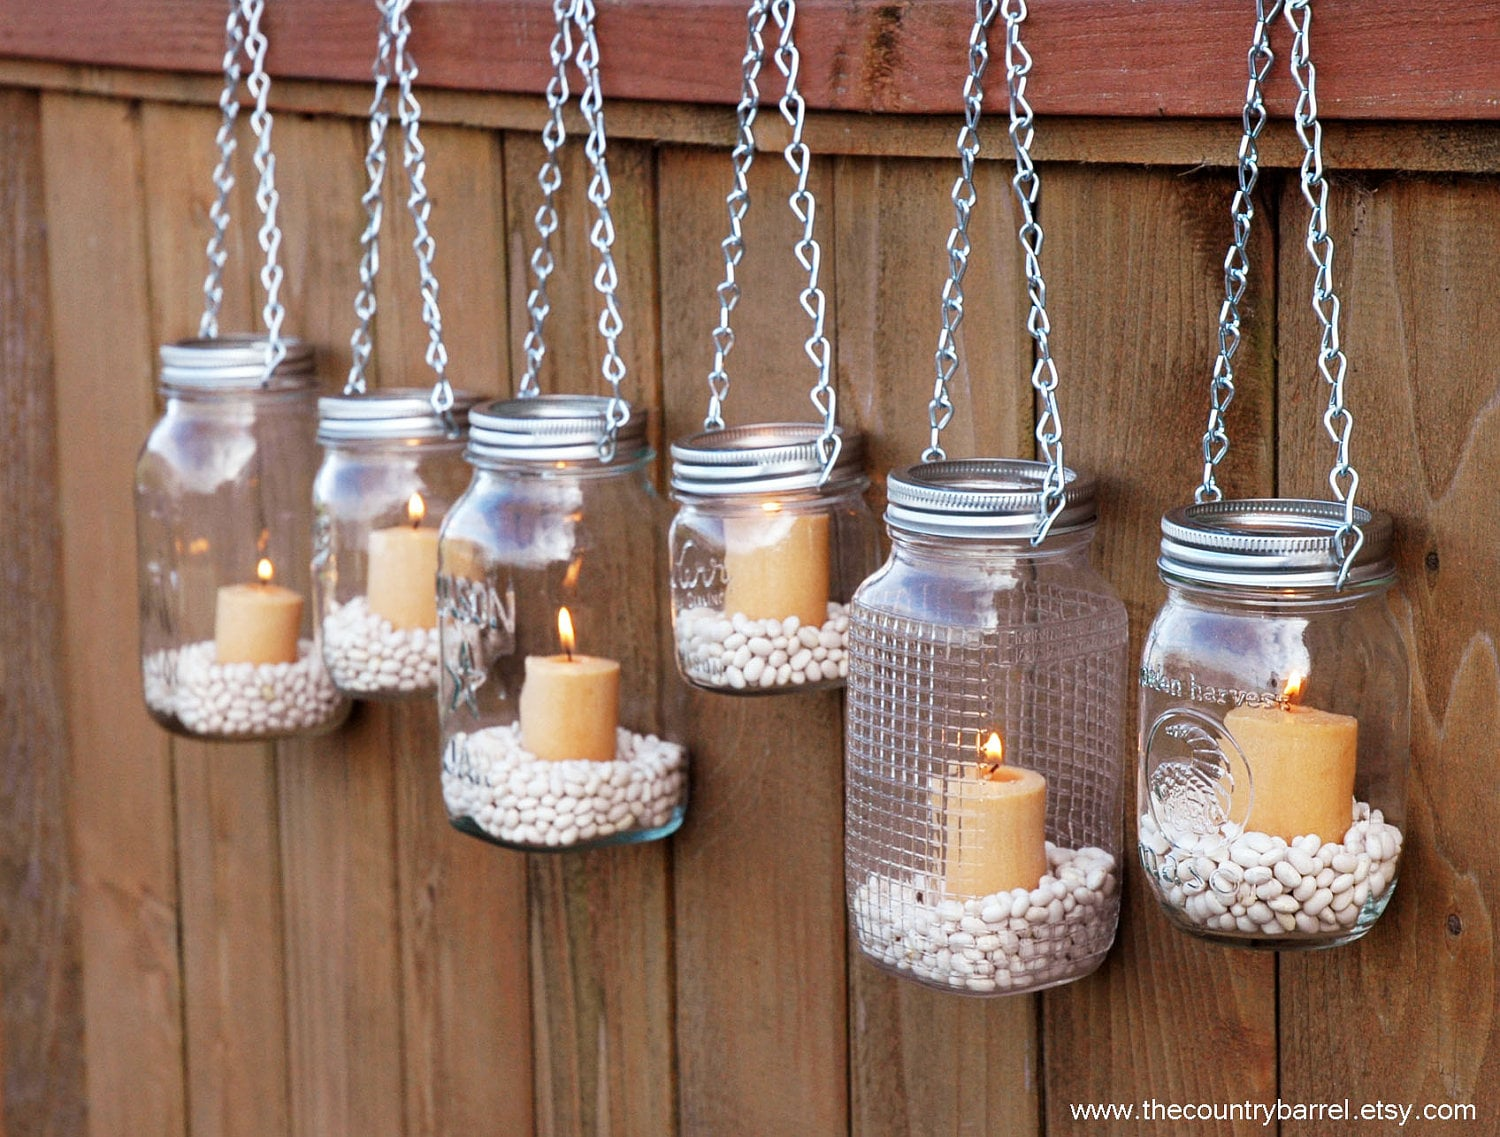 Mason Jar Candle Holders Bored These 212 Upcycling Ideas Will Definitely Keep You Busy During Popsugar Middle East Smart Living Photo 31